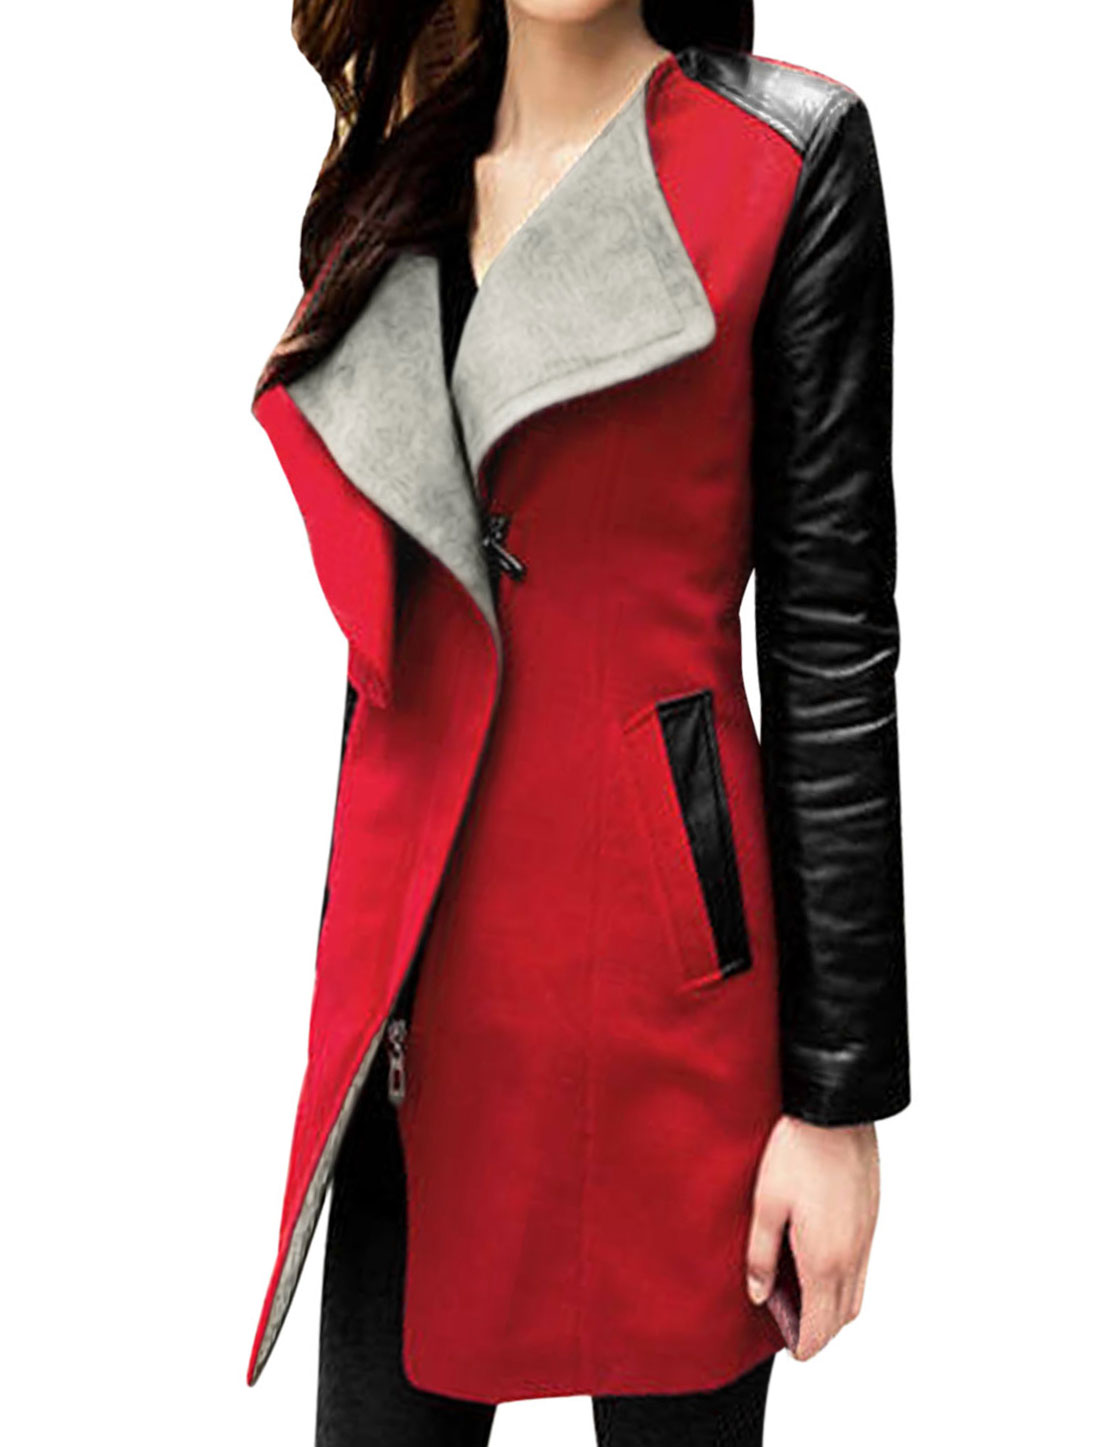 Lady Imitation Leather Panel Zip Up Leisure Worsted Coat Red Black S